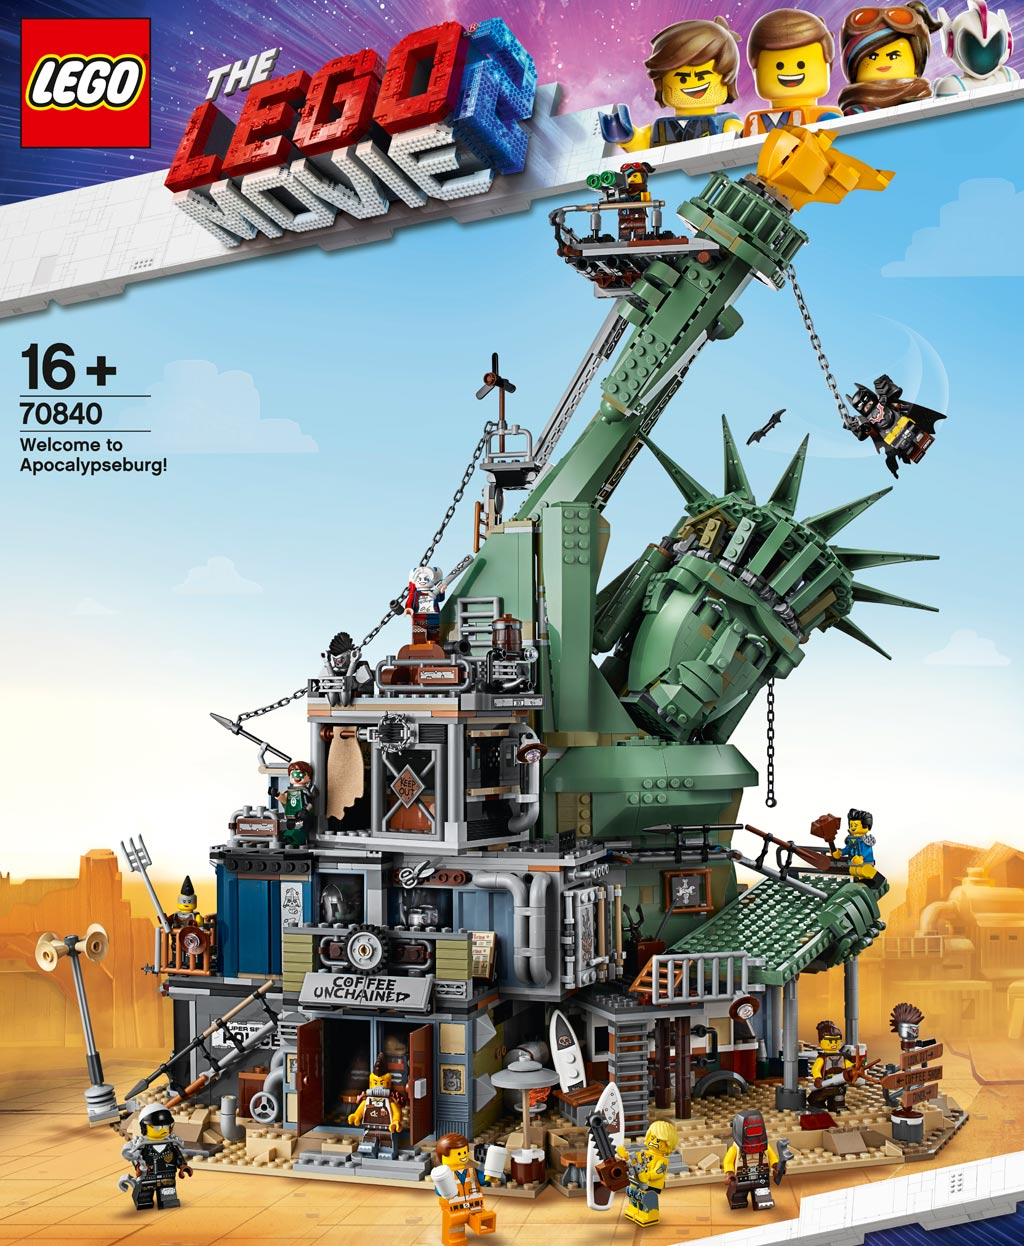 the-lego-movie-2-welcome-to-apocalypseburg-70840-front-2019 zusammengebaut.com